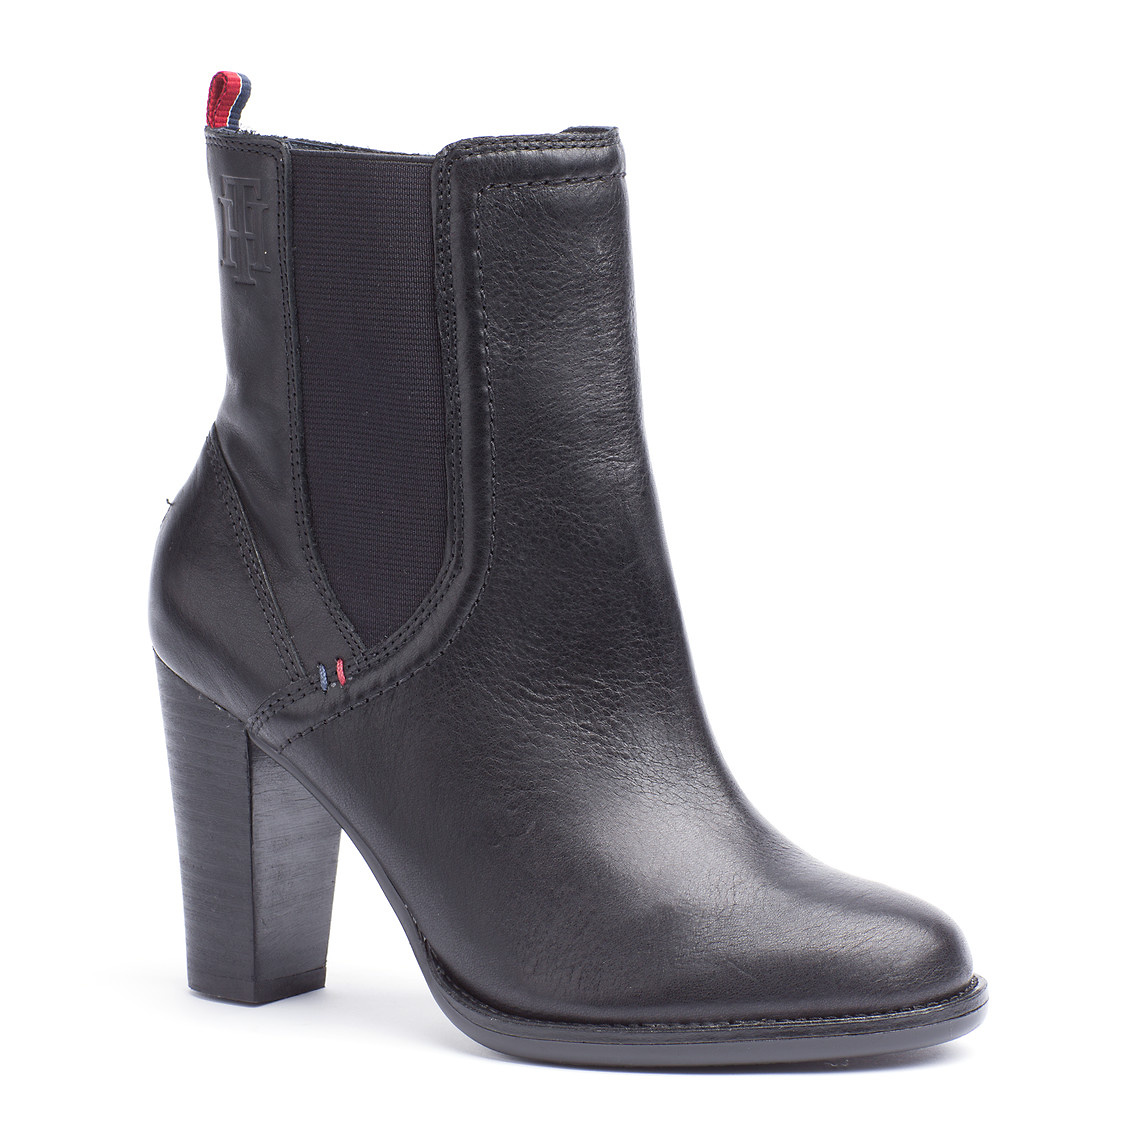 tommy hilfiger kalina ankle boots in black lyst. Black Bedroom Furniture Sets. Home Design Ideas